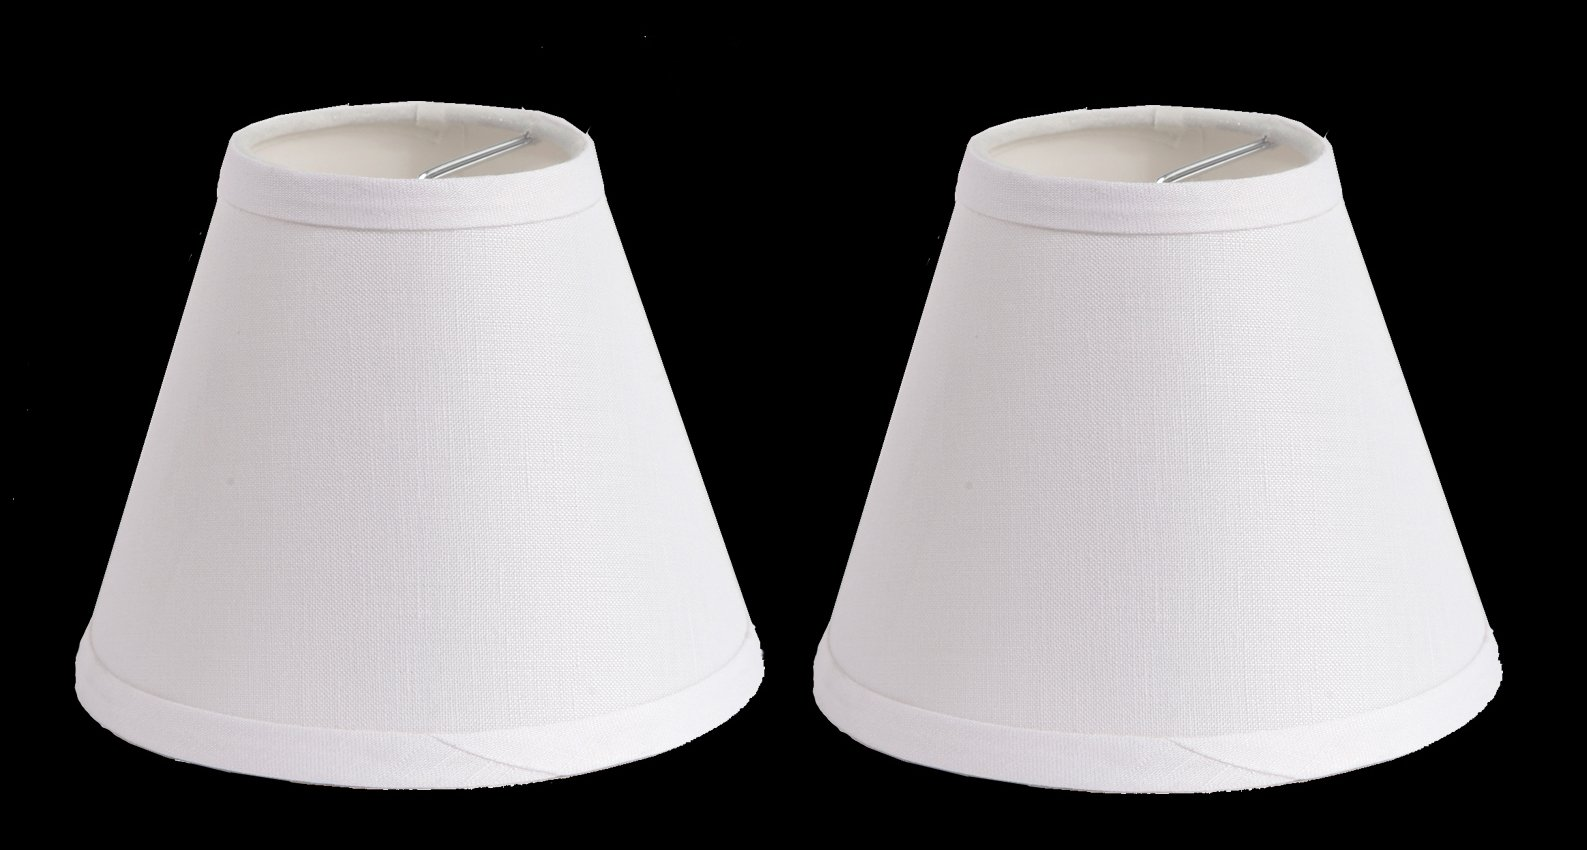 Urbanest 100% Linen Chandelier Lamp Shades, 6-inch, Hardback Clip On, White(set of 2) by Urbanest (Image #1)